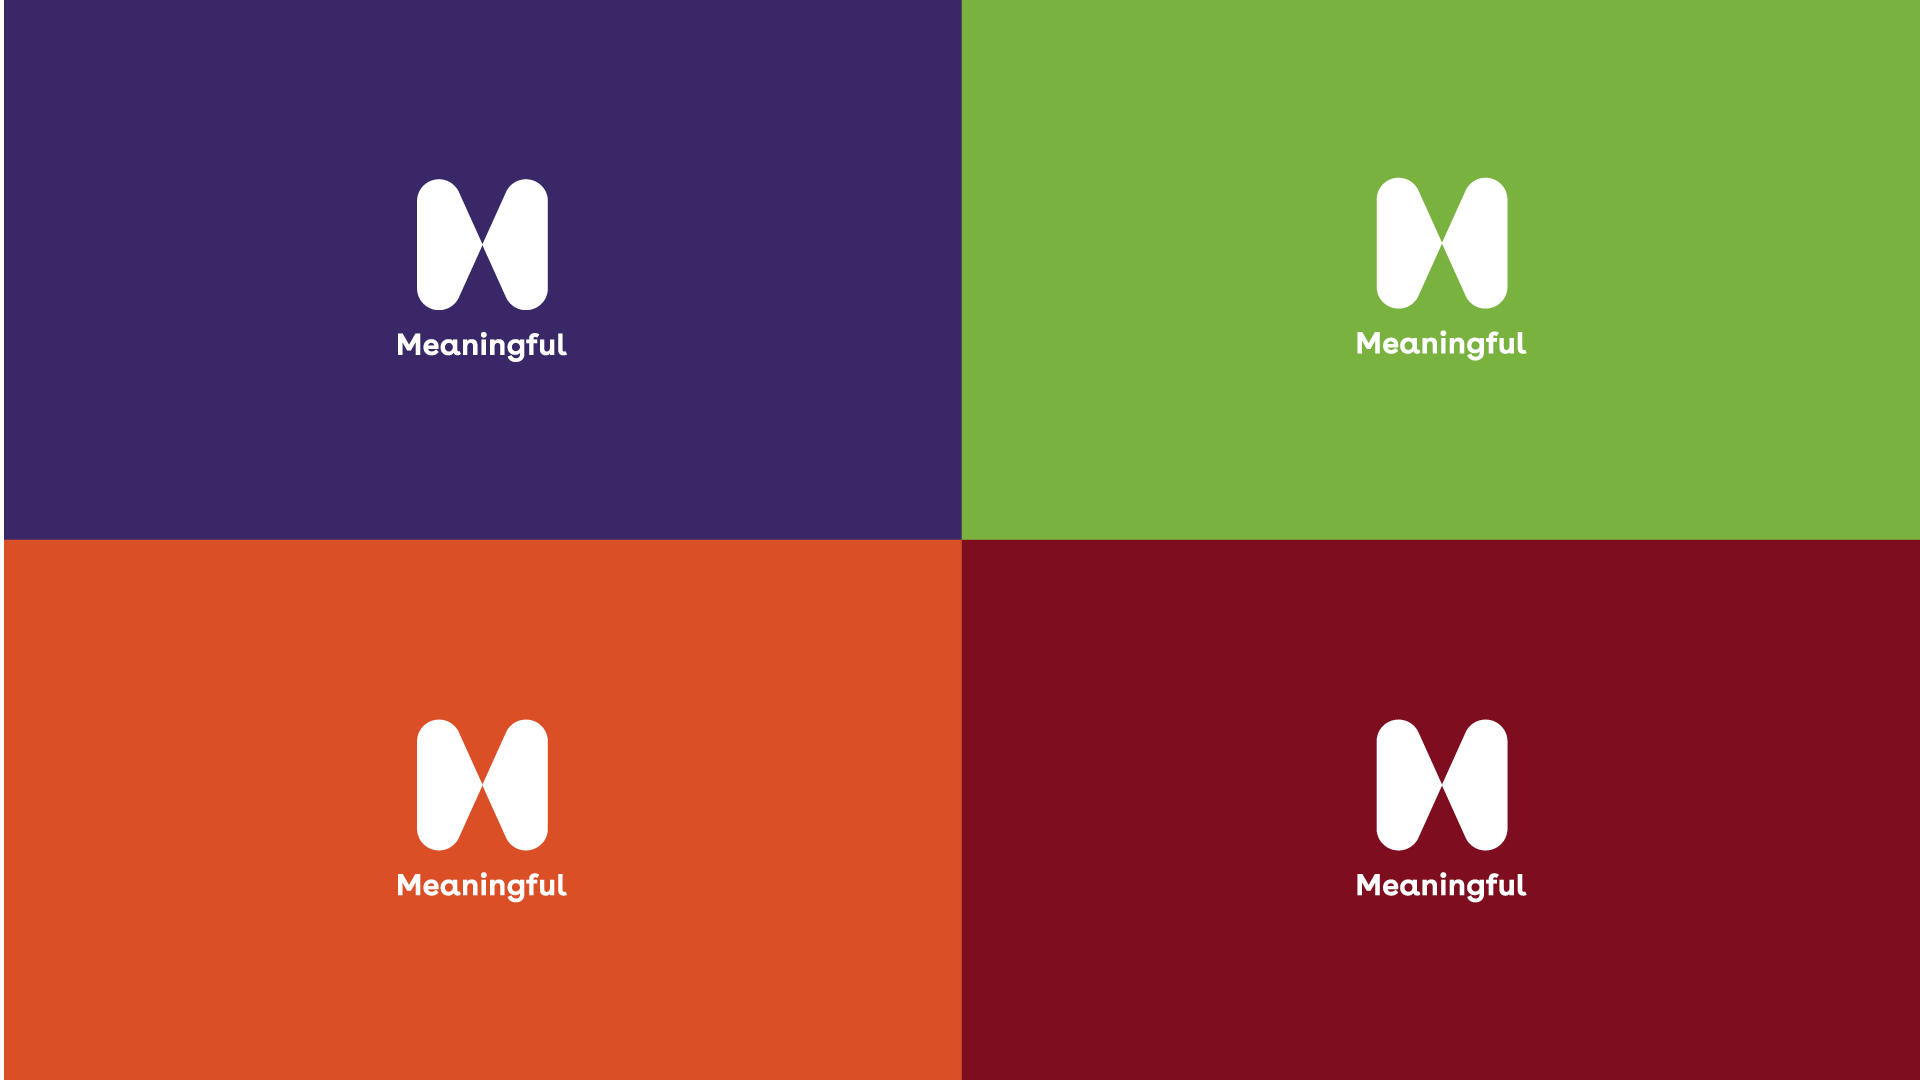 Meaningful_Website material7